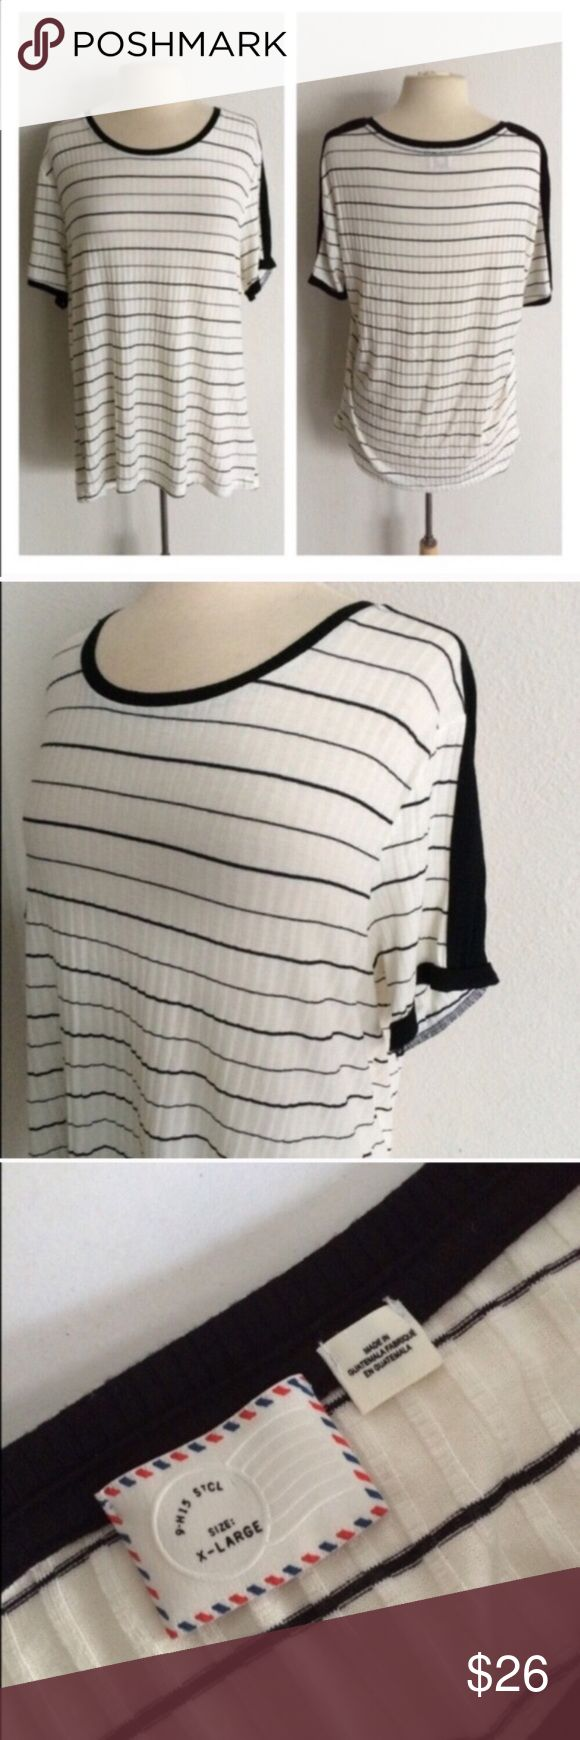 """Postmark striped top Postmark black and white top. Size XL. Measures 29"""" long with a 42"""" bust. 90% rayon/ 6% polyester/ 4% spandex. Extremely soft with great stretch! Very great used condition.  🚫NO TRADES🚫 💲Reasonable offers accepted💲 💰Ask about bundle discounts💰 Anthropologie Tops Tees - Short Sleeve"""